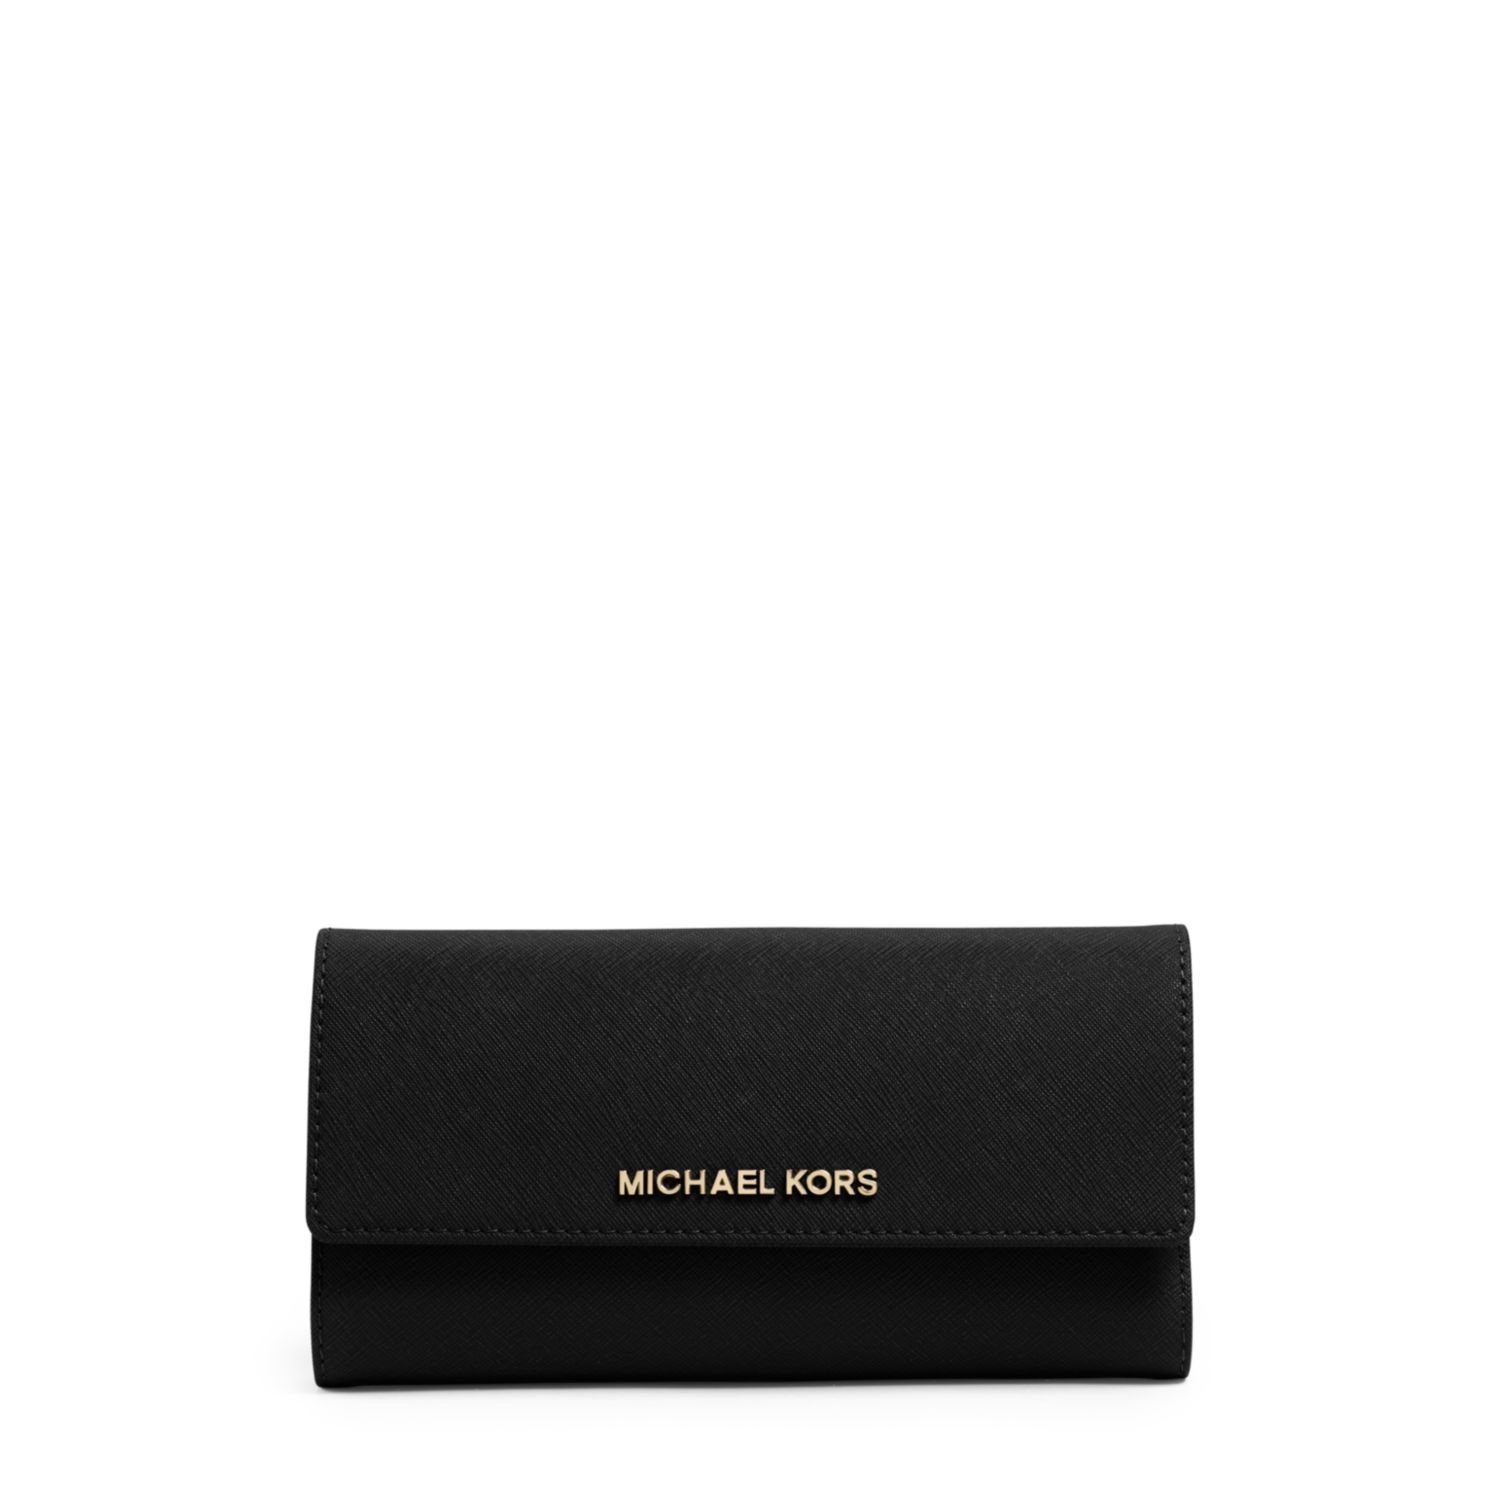 deeb0c60c64542 Michael Kors Jet Set Travel Saffiano Leather Checkbook Wallet in ...